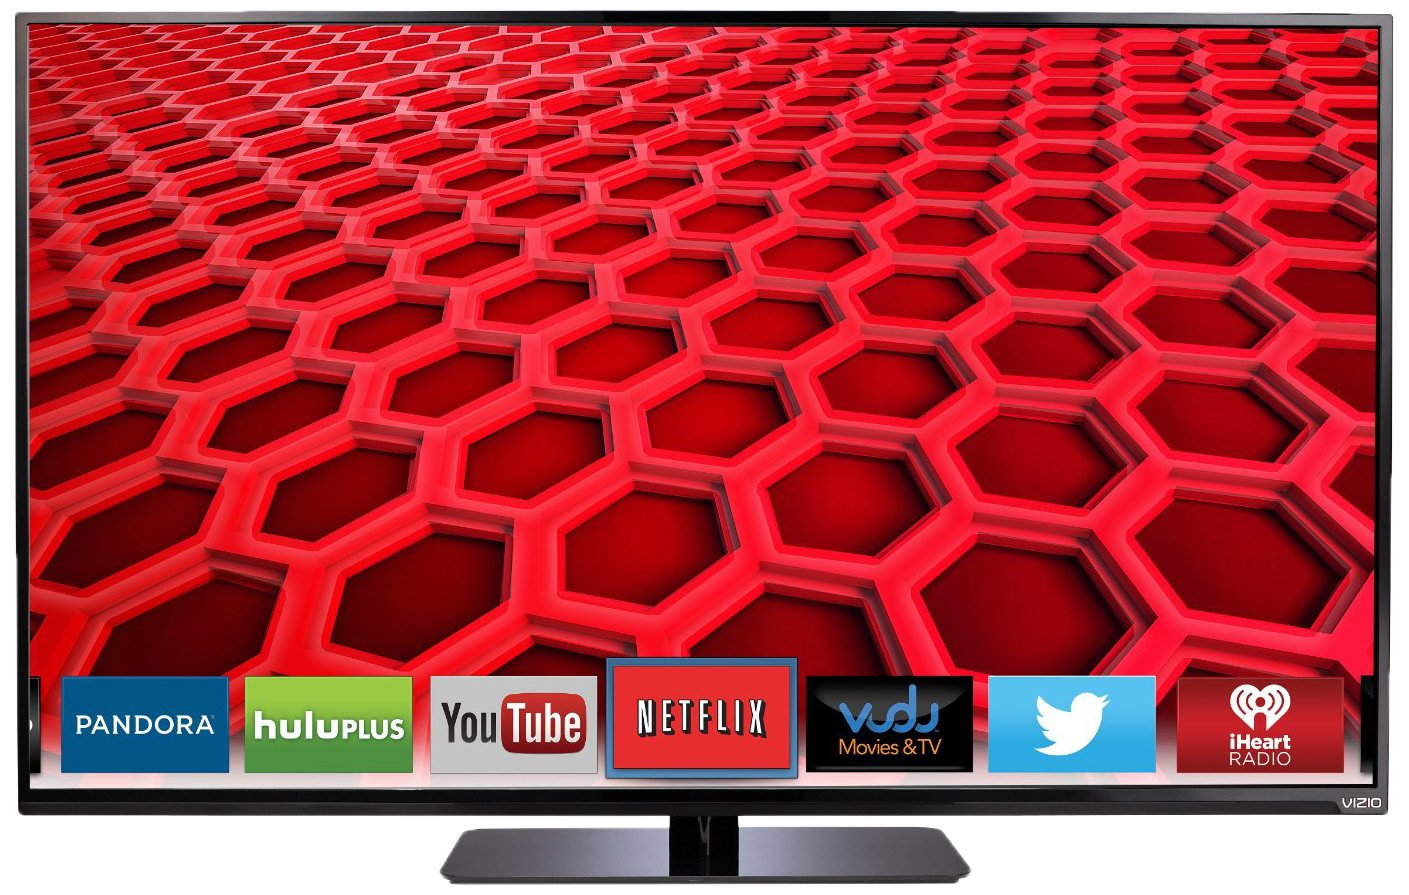 VIZIO E600I-B3 60-Inch LED Smart TV Review